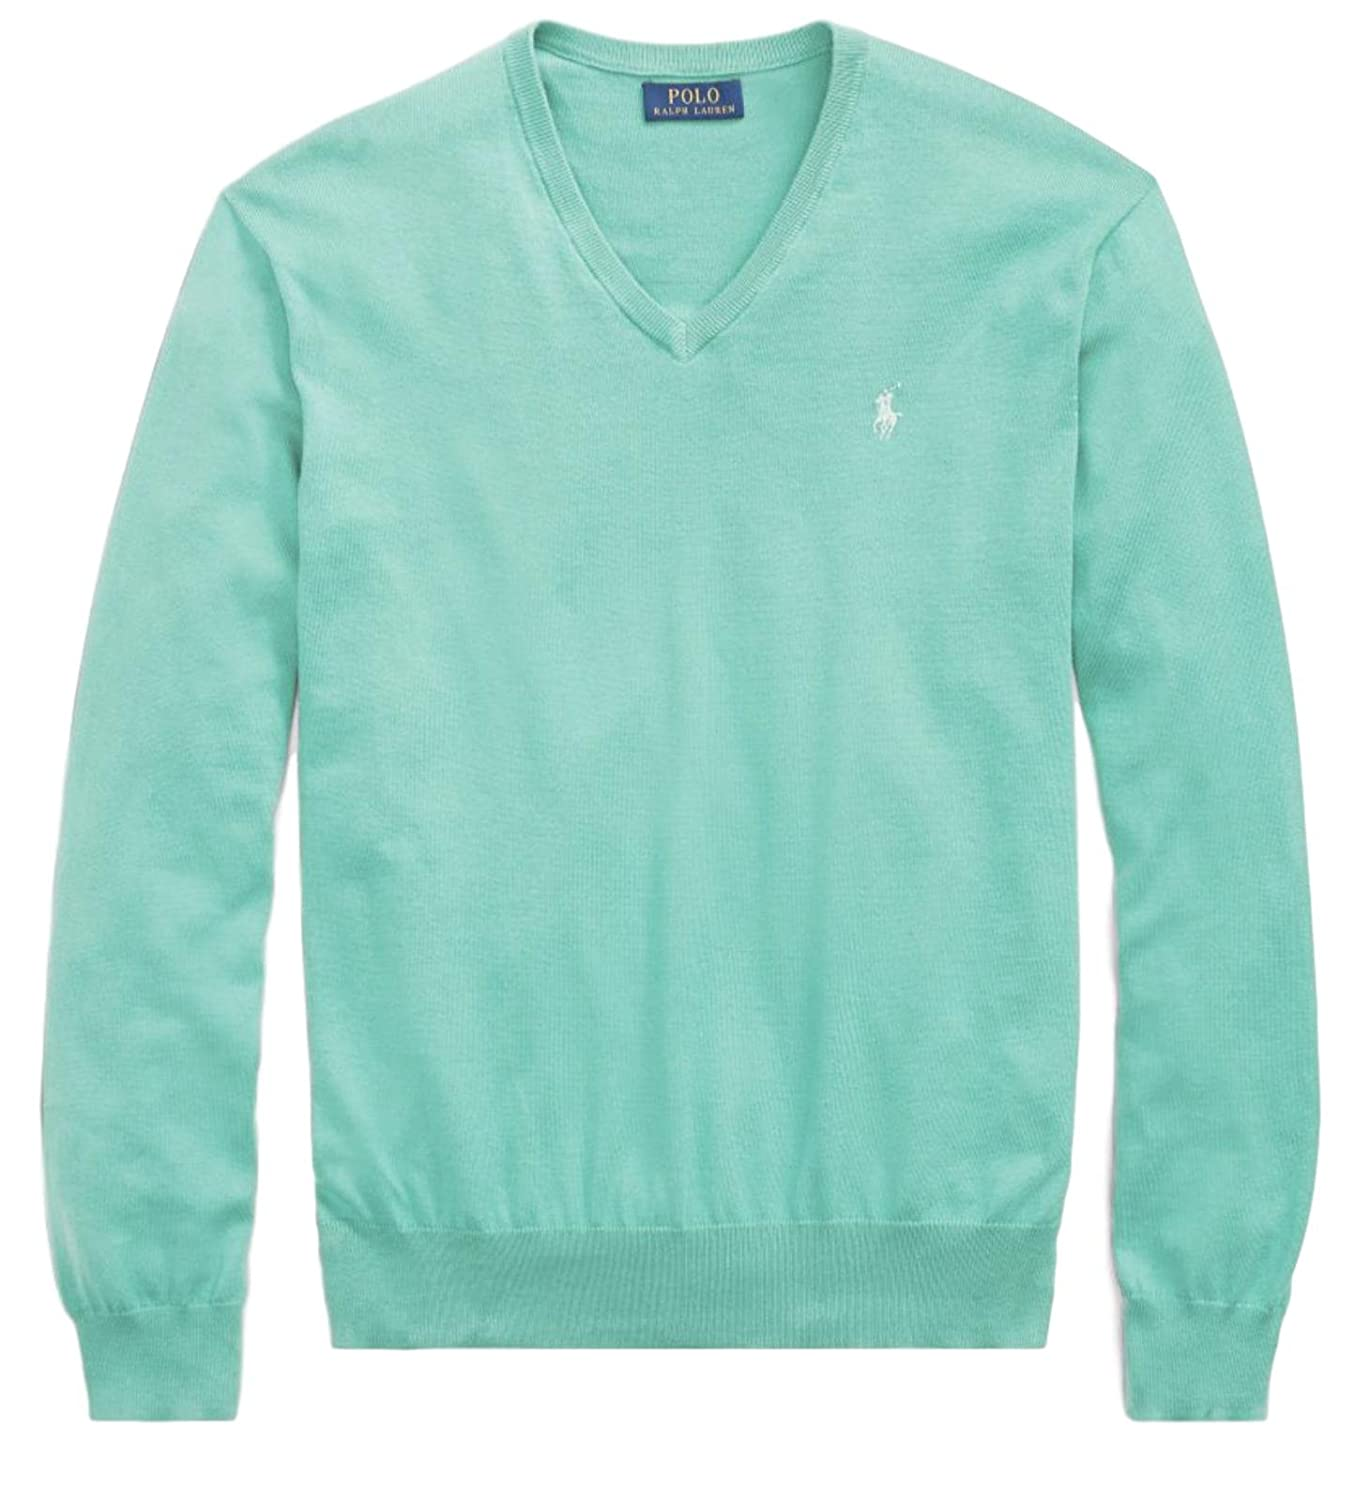 b8f196c9 Polo Ralph Lauren is a pinnacle of fashion and design. These pima cotton v-neck  sweaters are perfect for layering or wearing alone making them a must have  ...